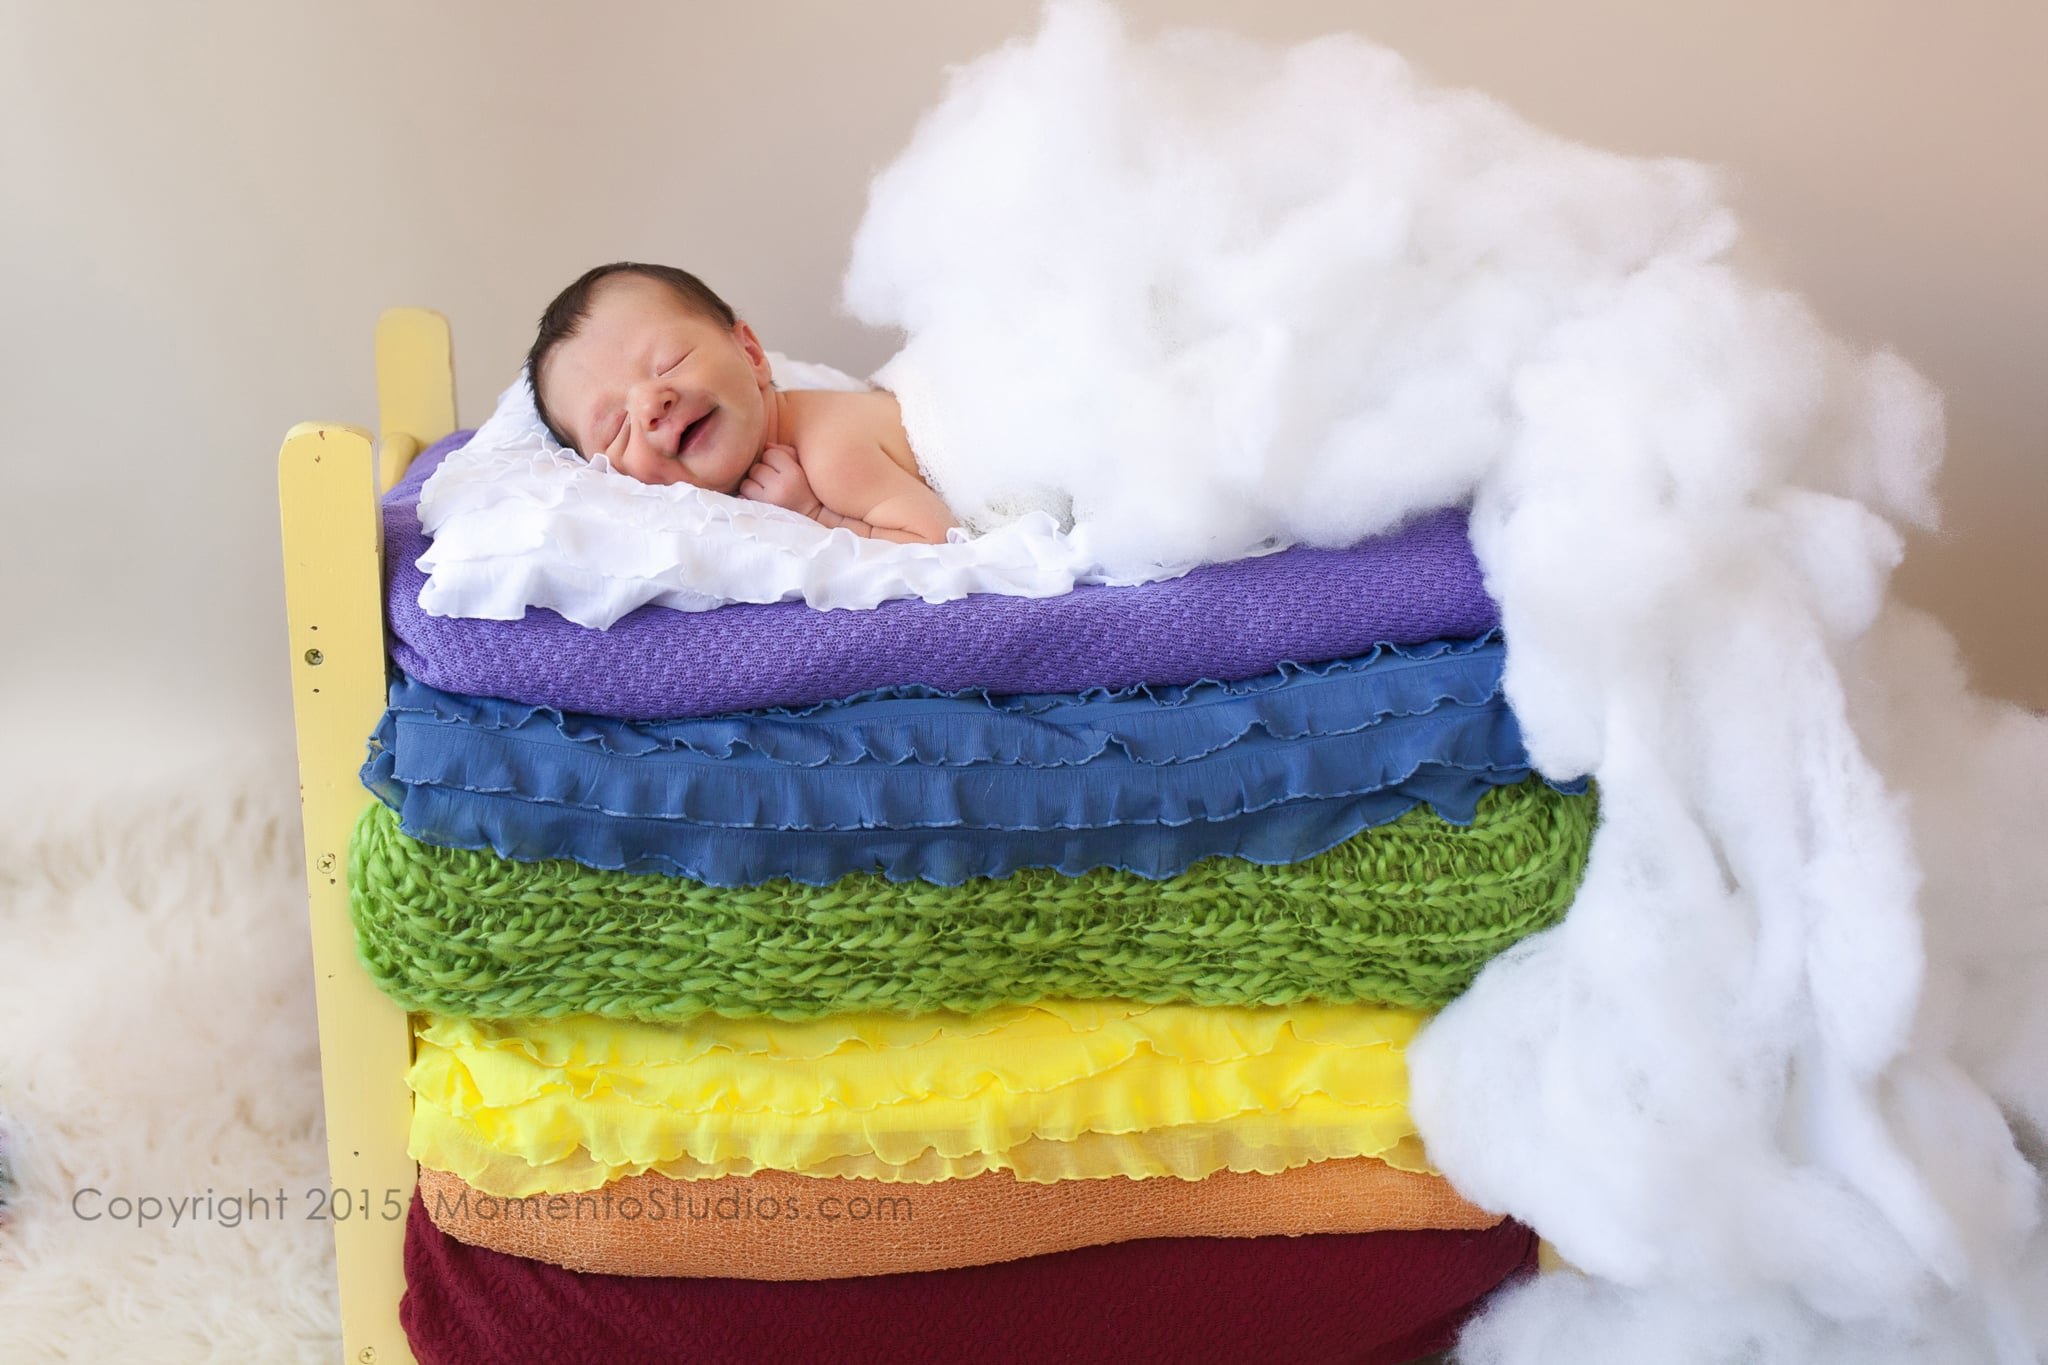 rainbow baby photo ideas - Baby Toddlers Kids & Parenting